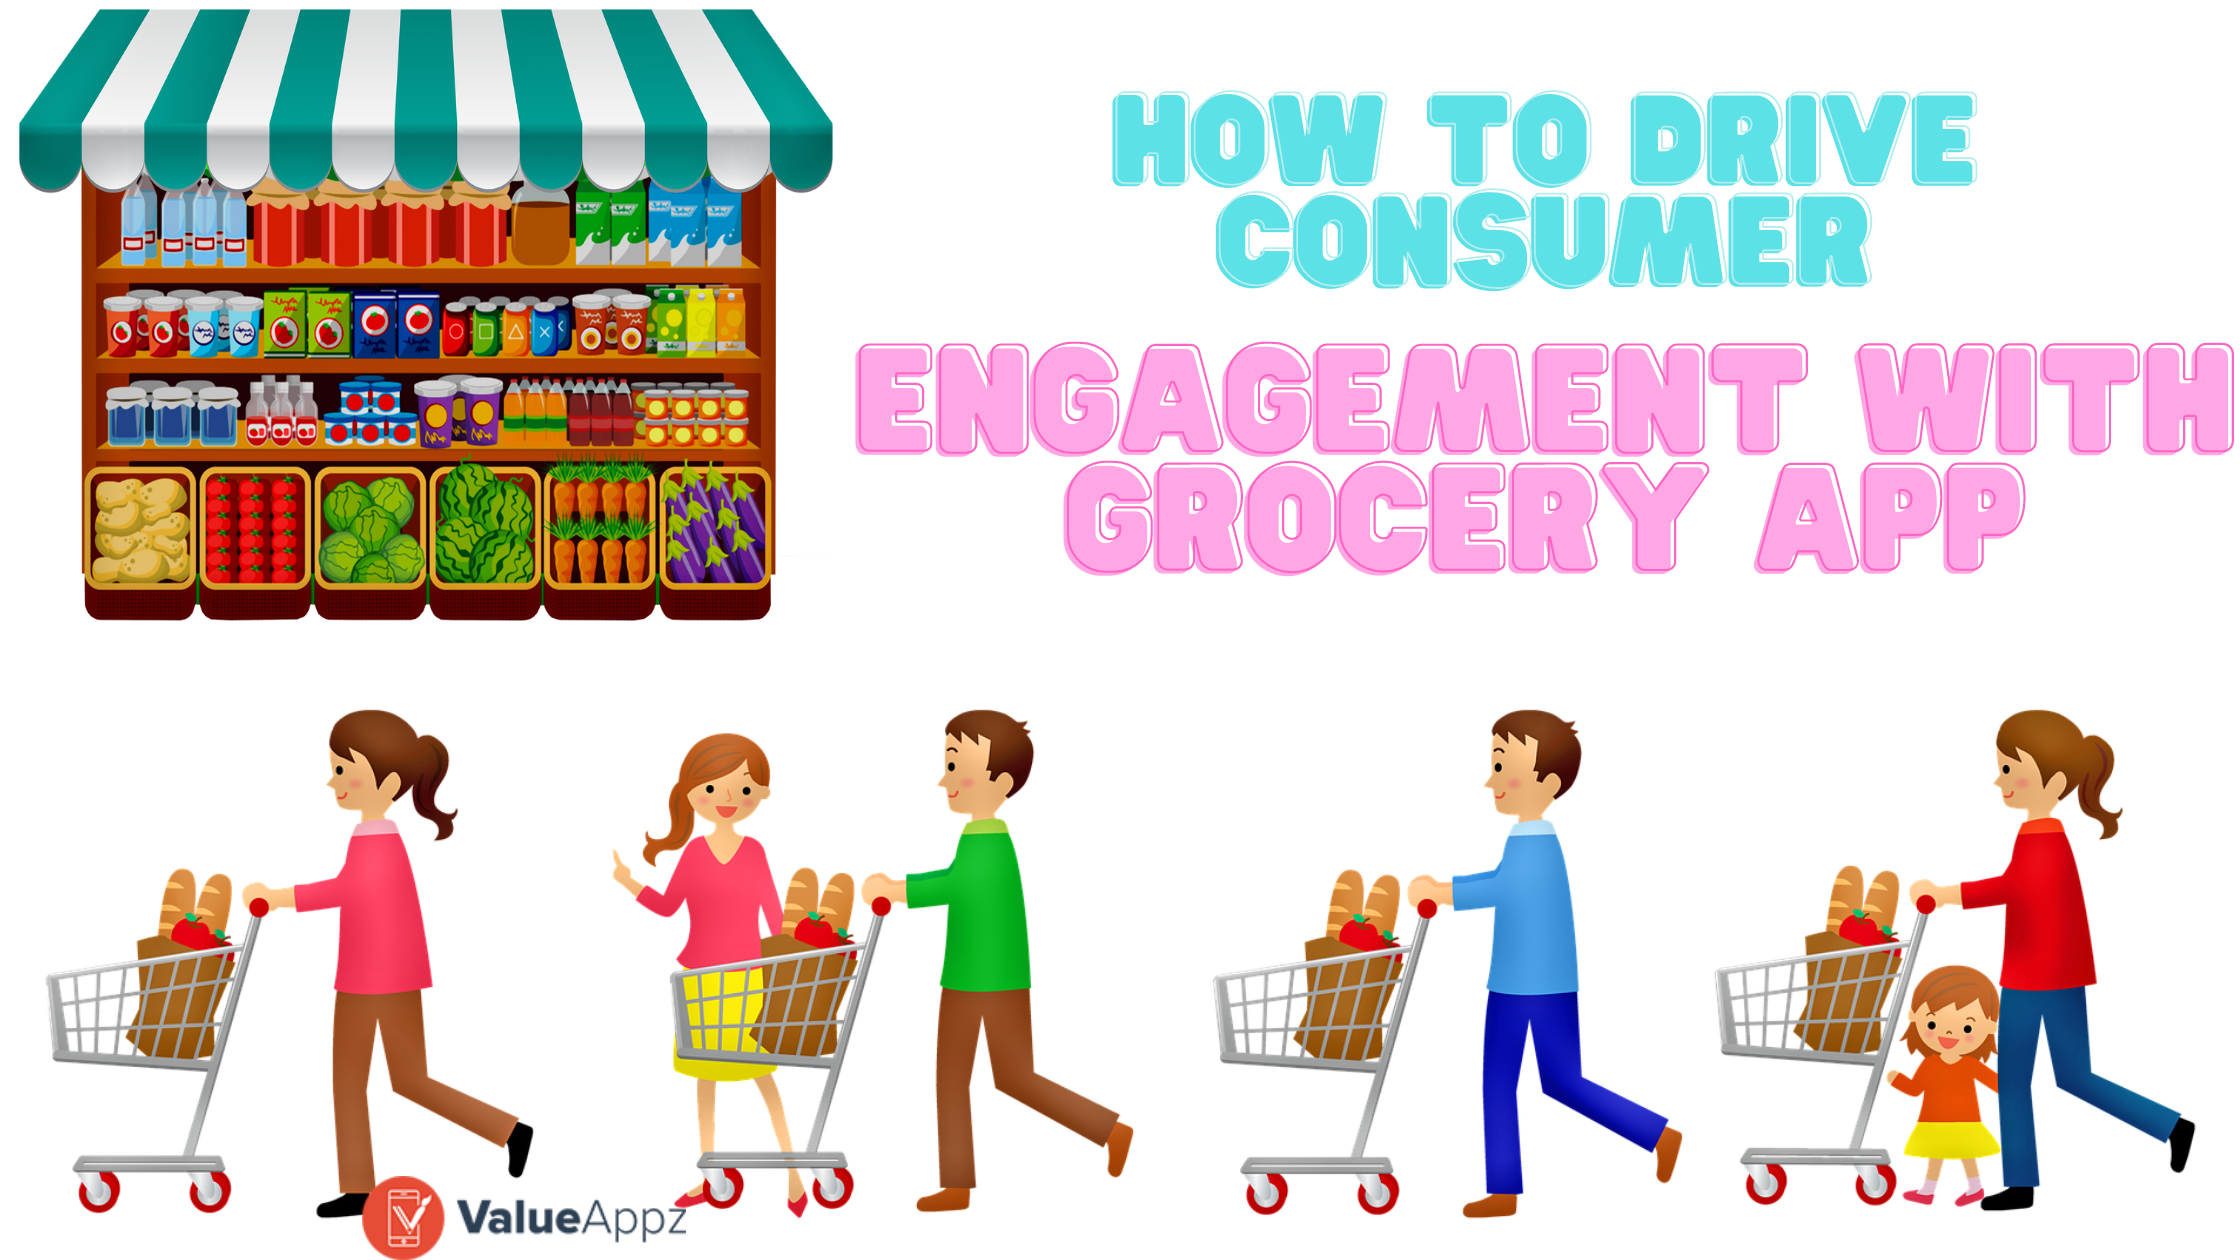 How To Drive Consumer Engagement with Groc...